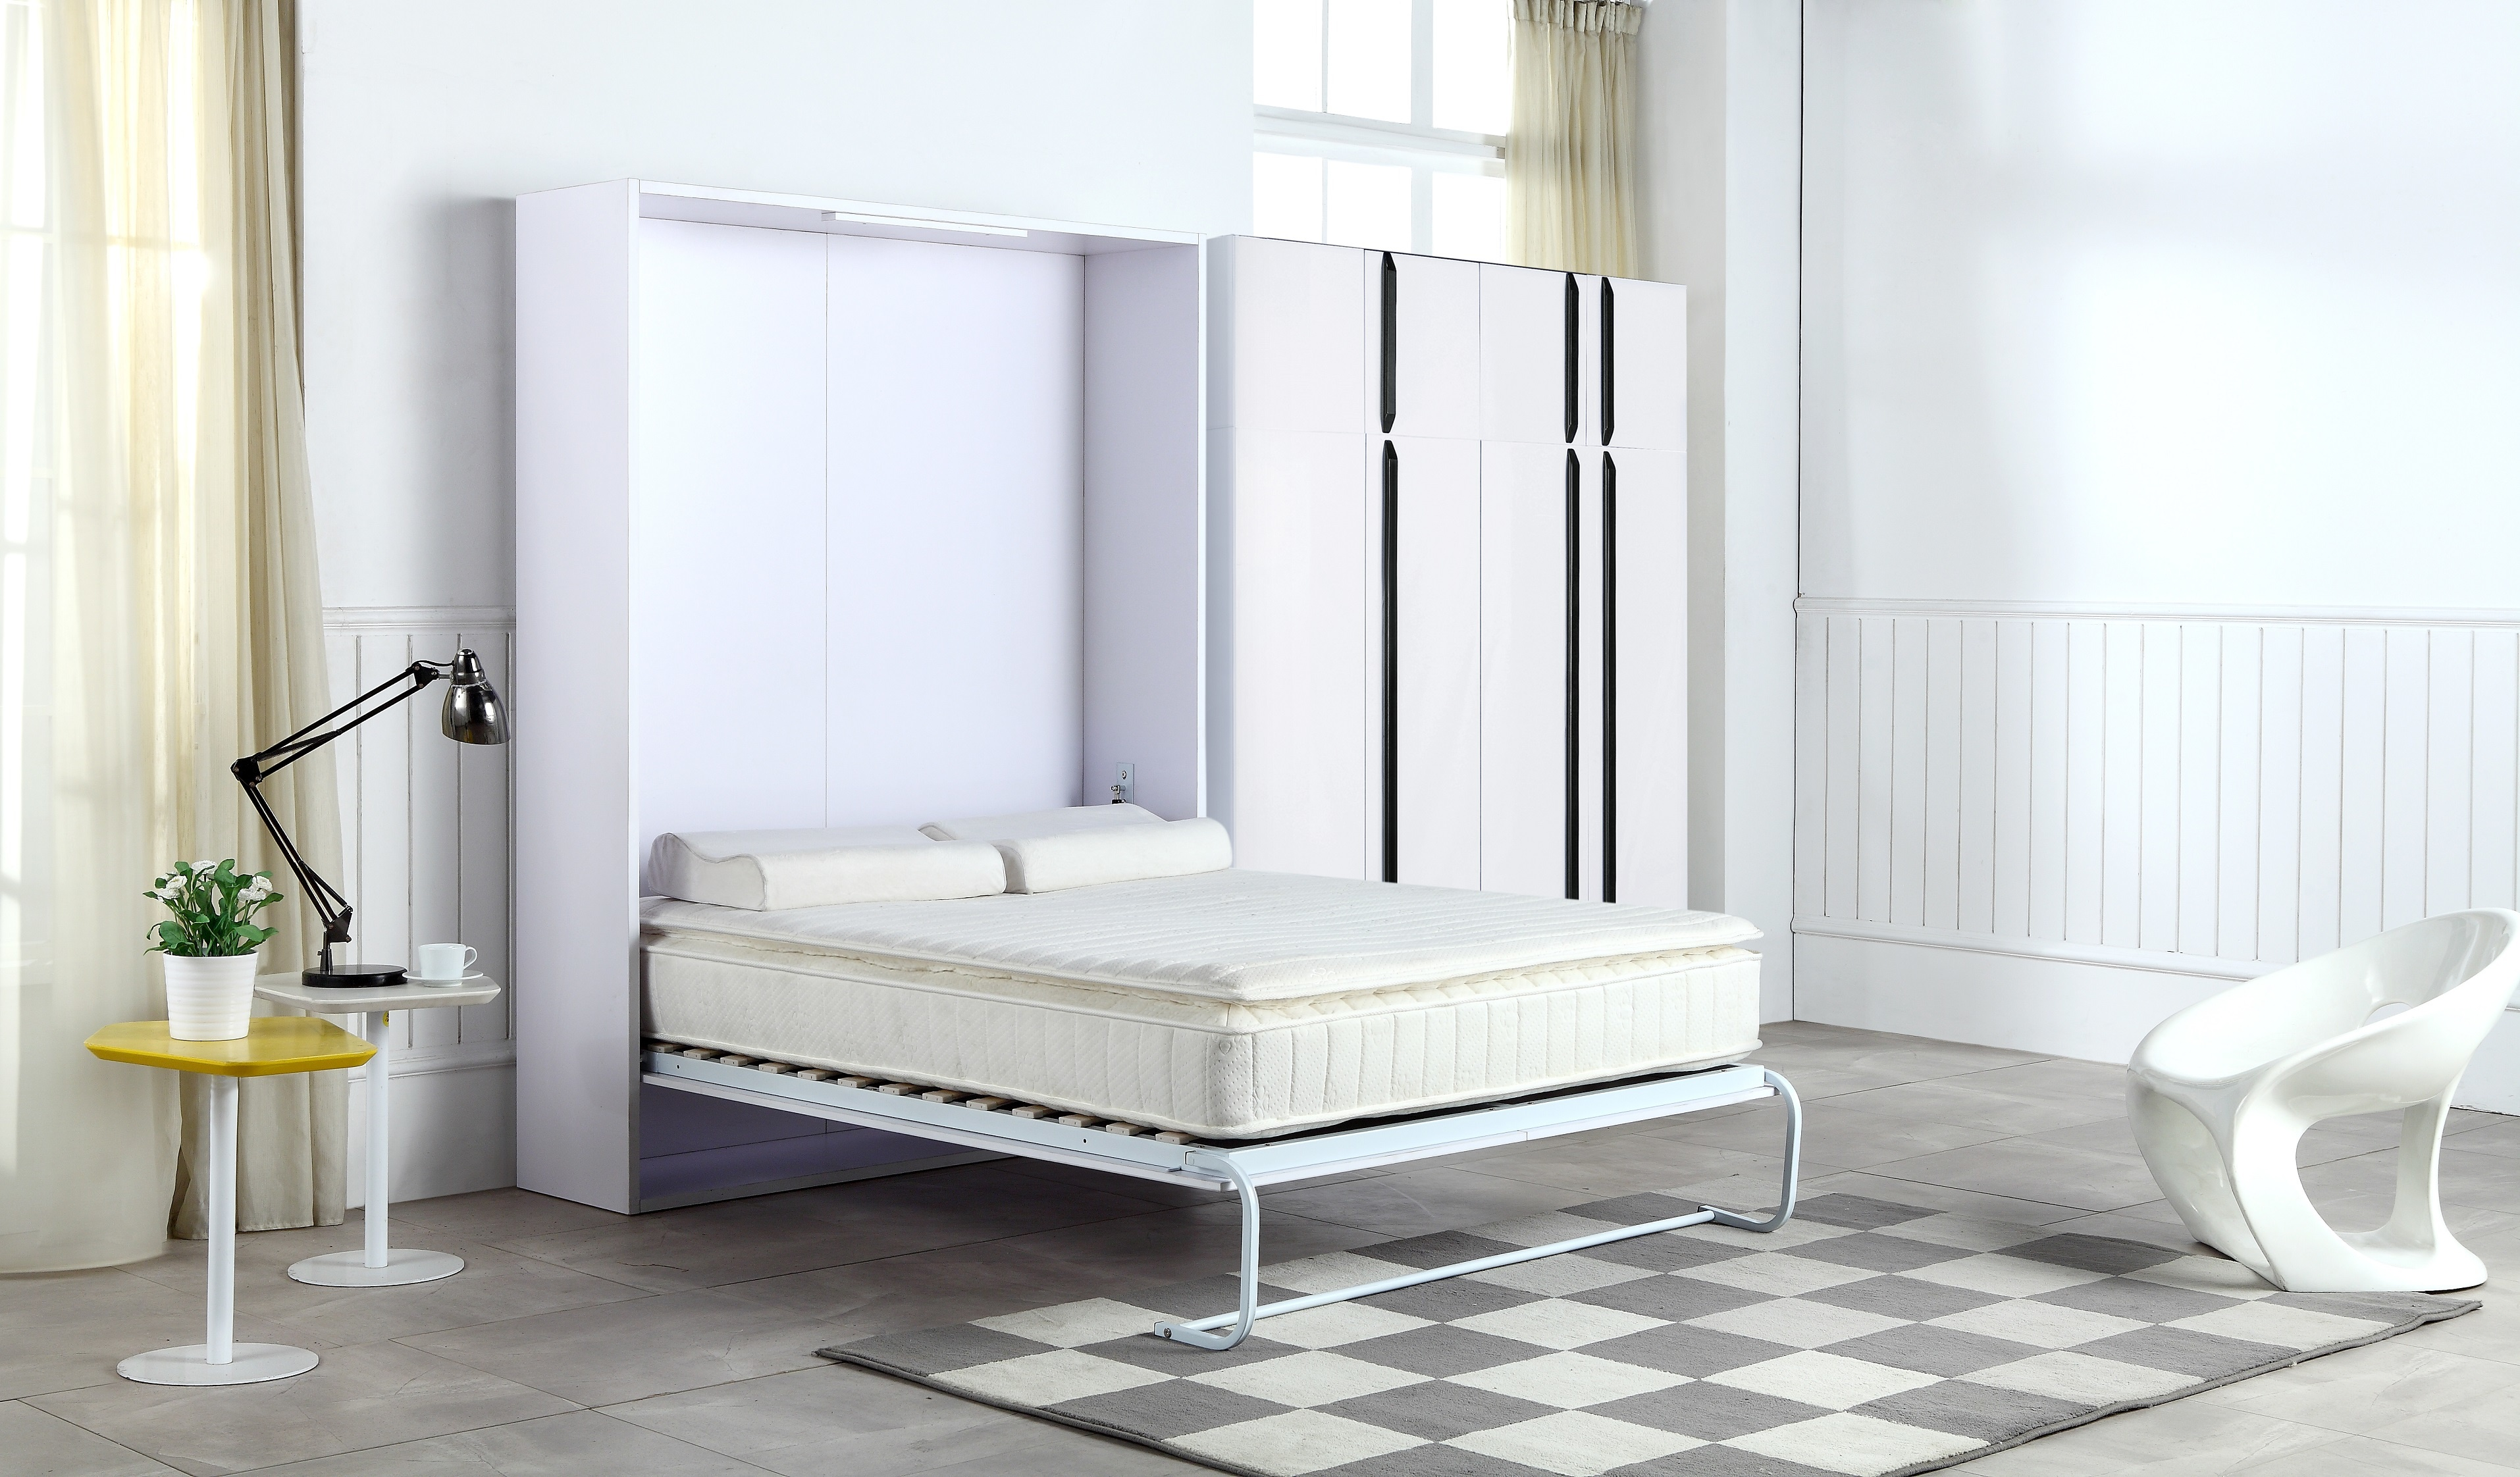 Palermo Double Size Wall Bed  Z2730